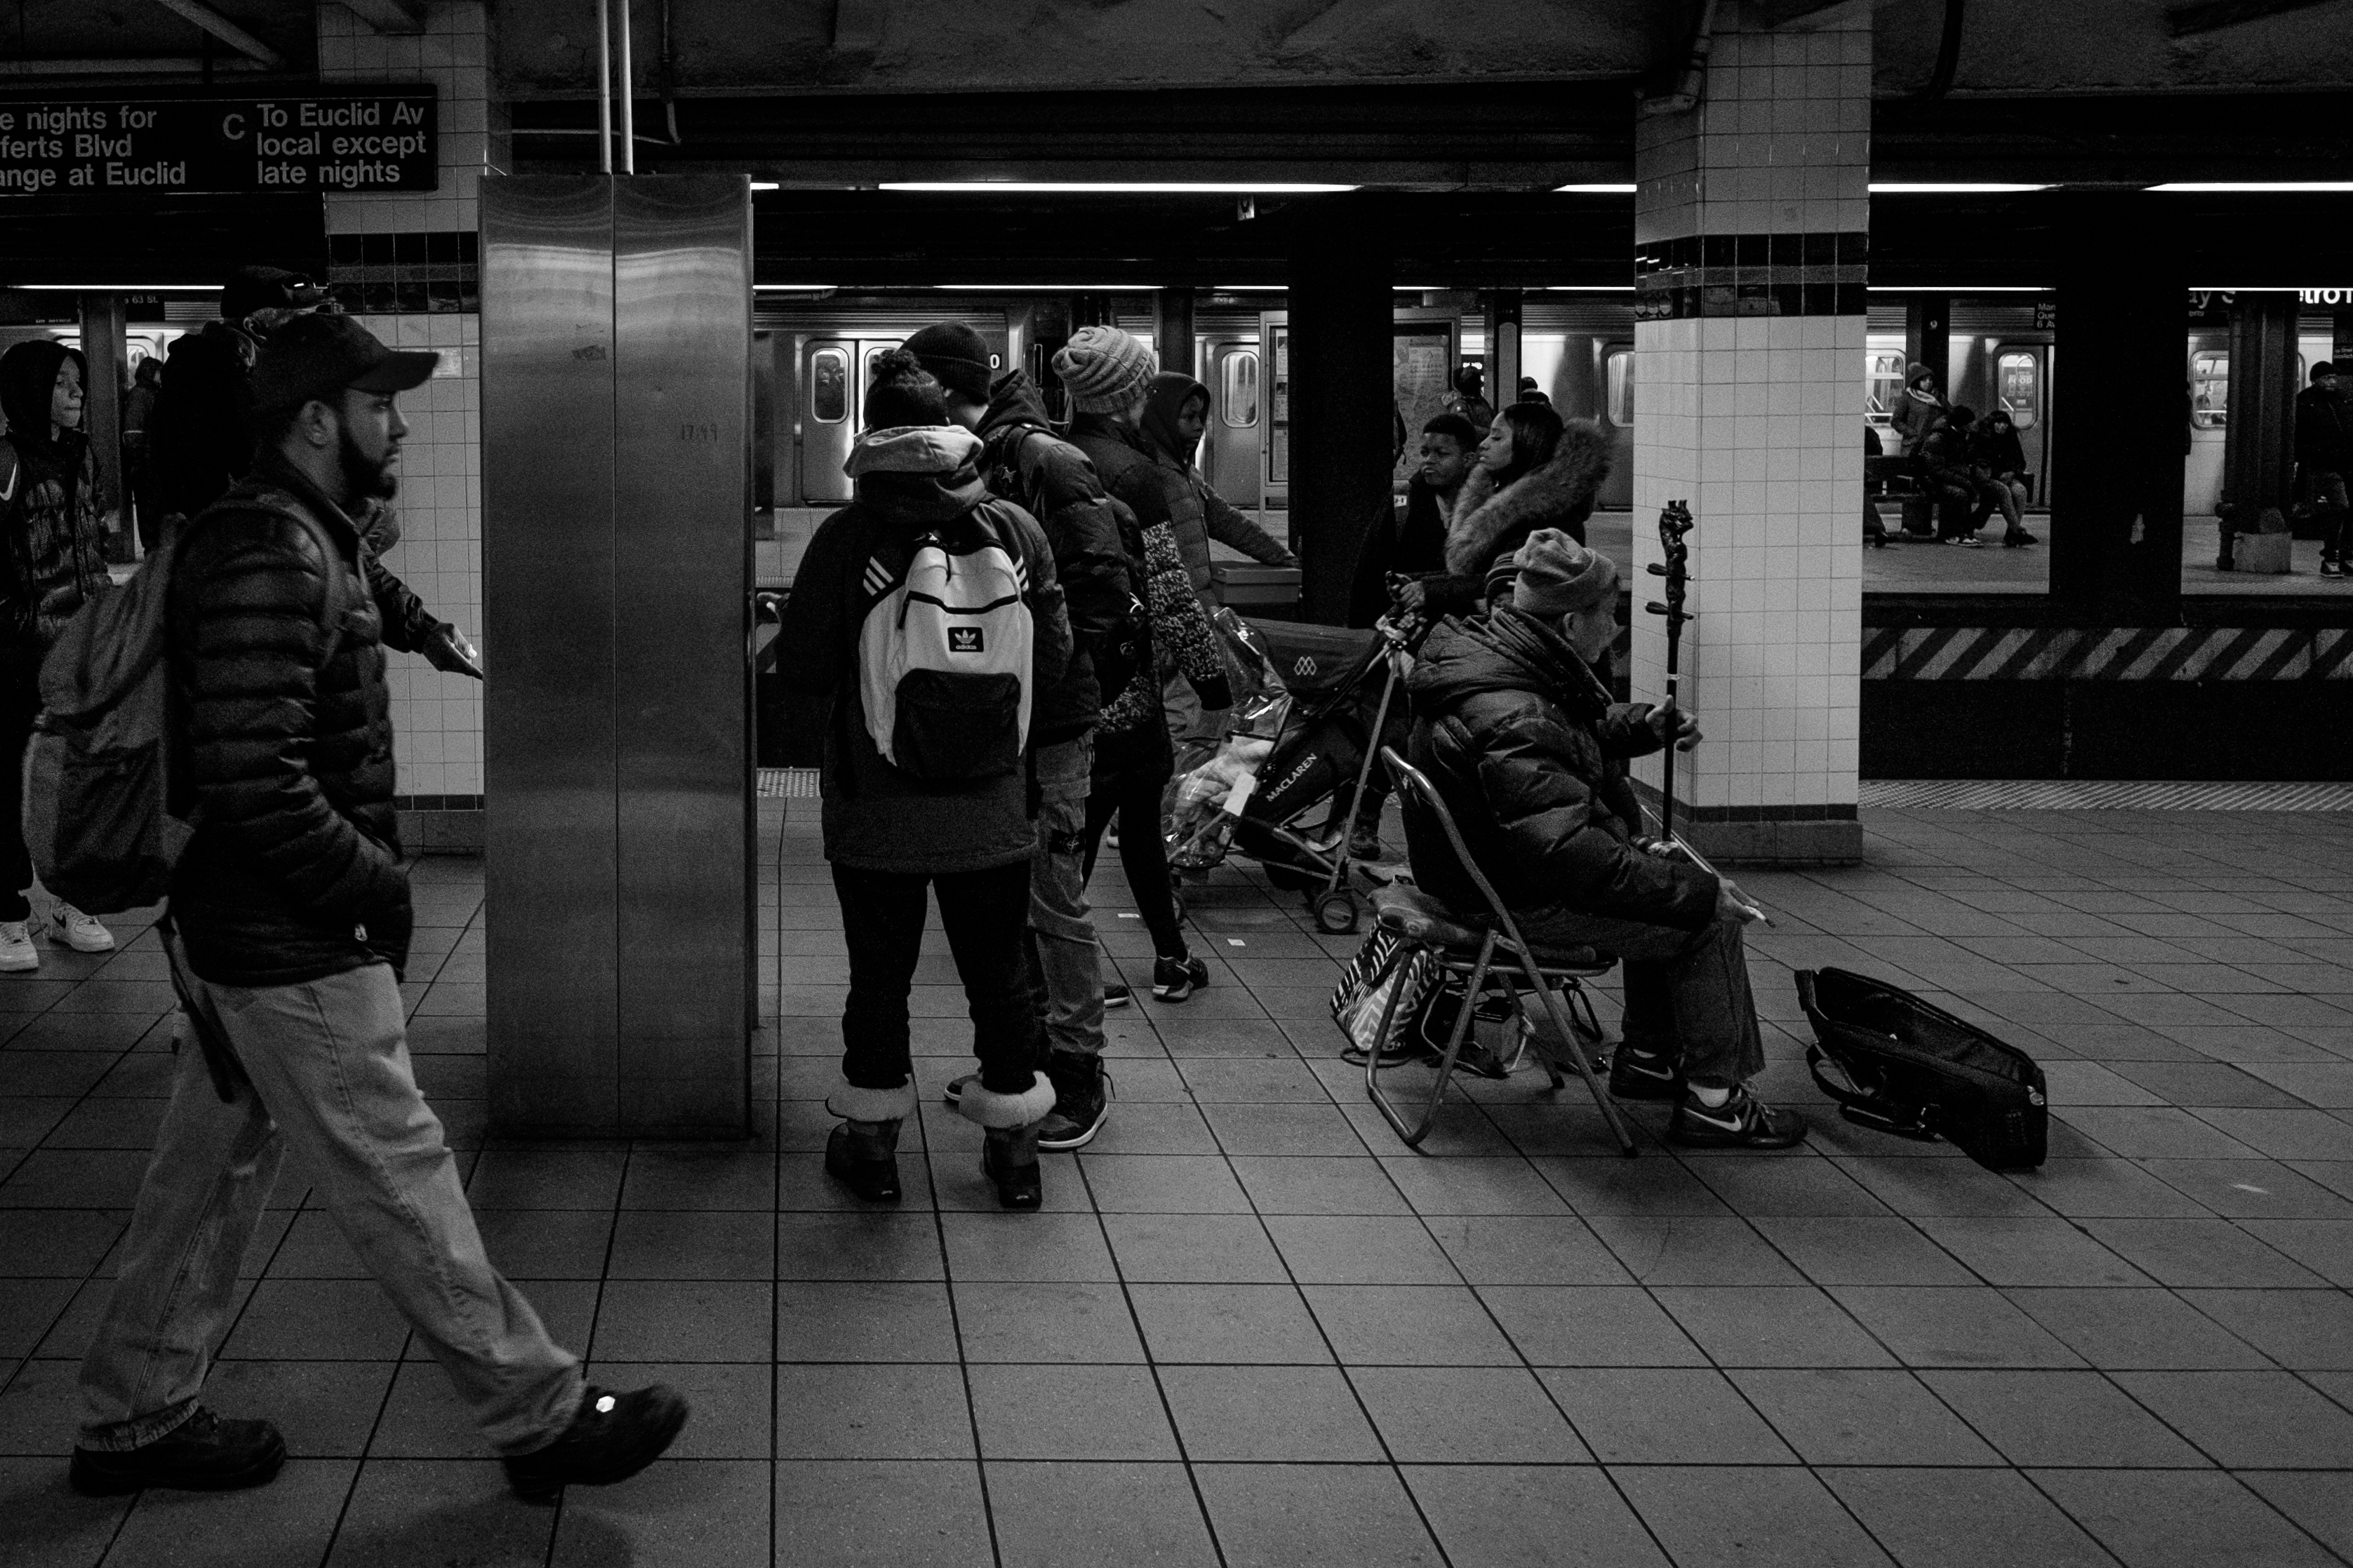 jay-st-mta-subway-brooklyn-black-and-white-photography